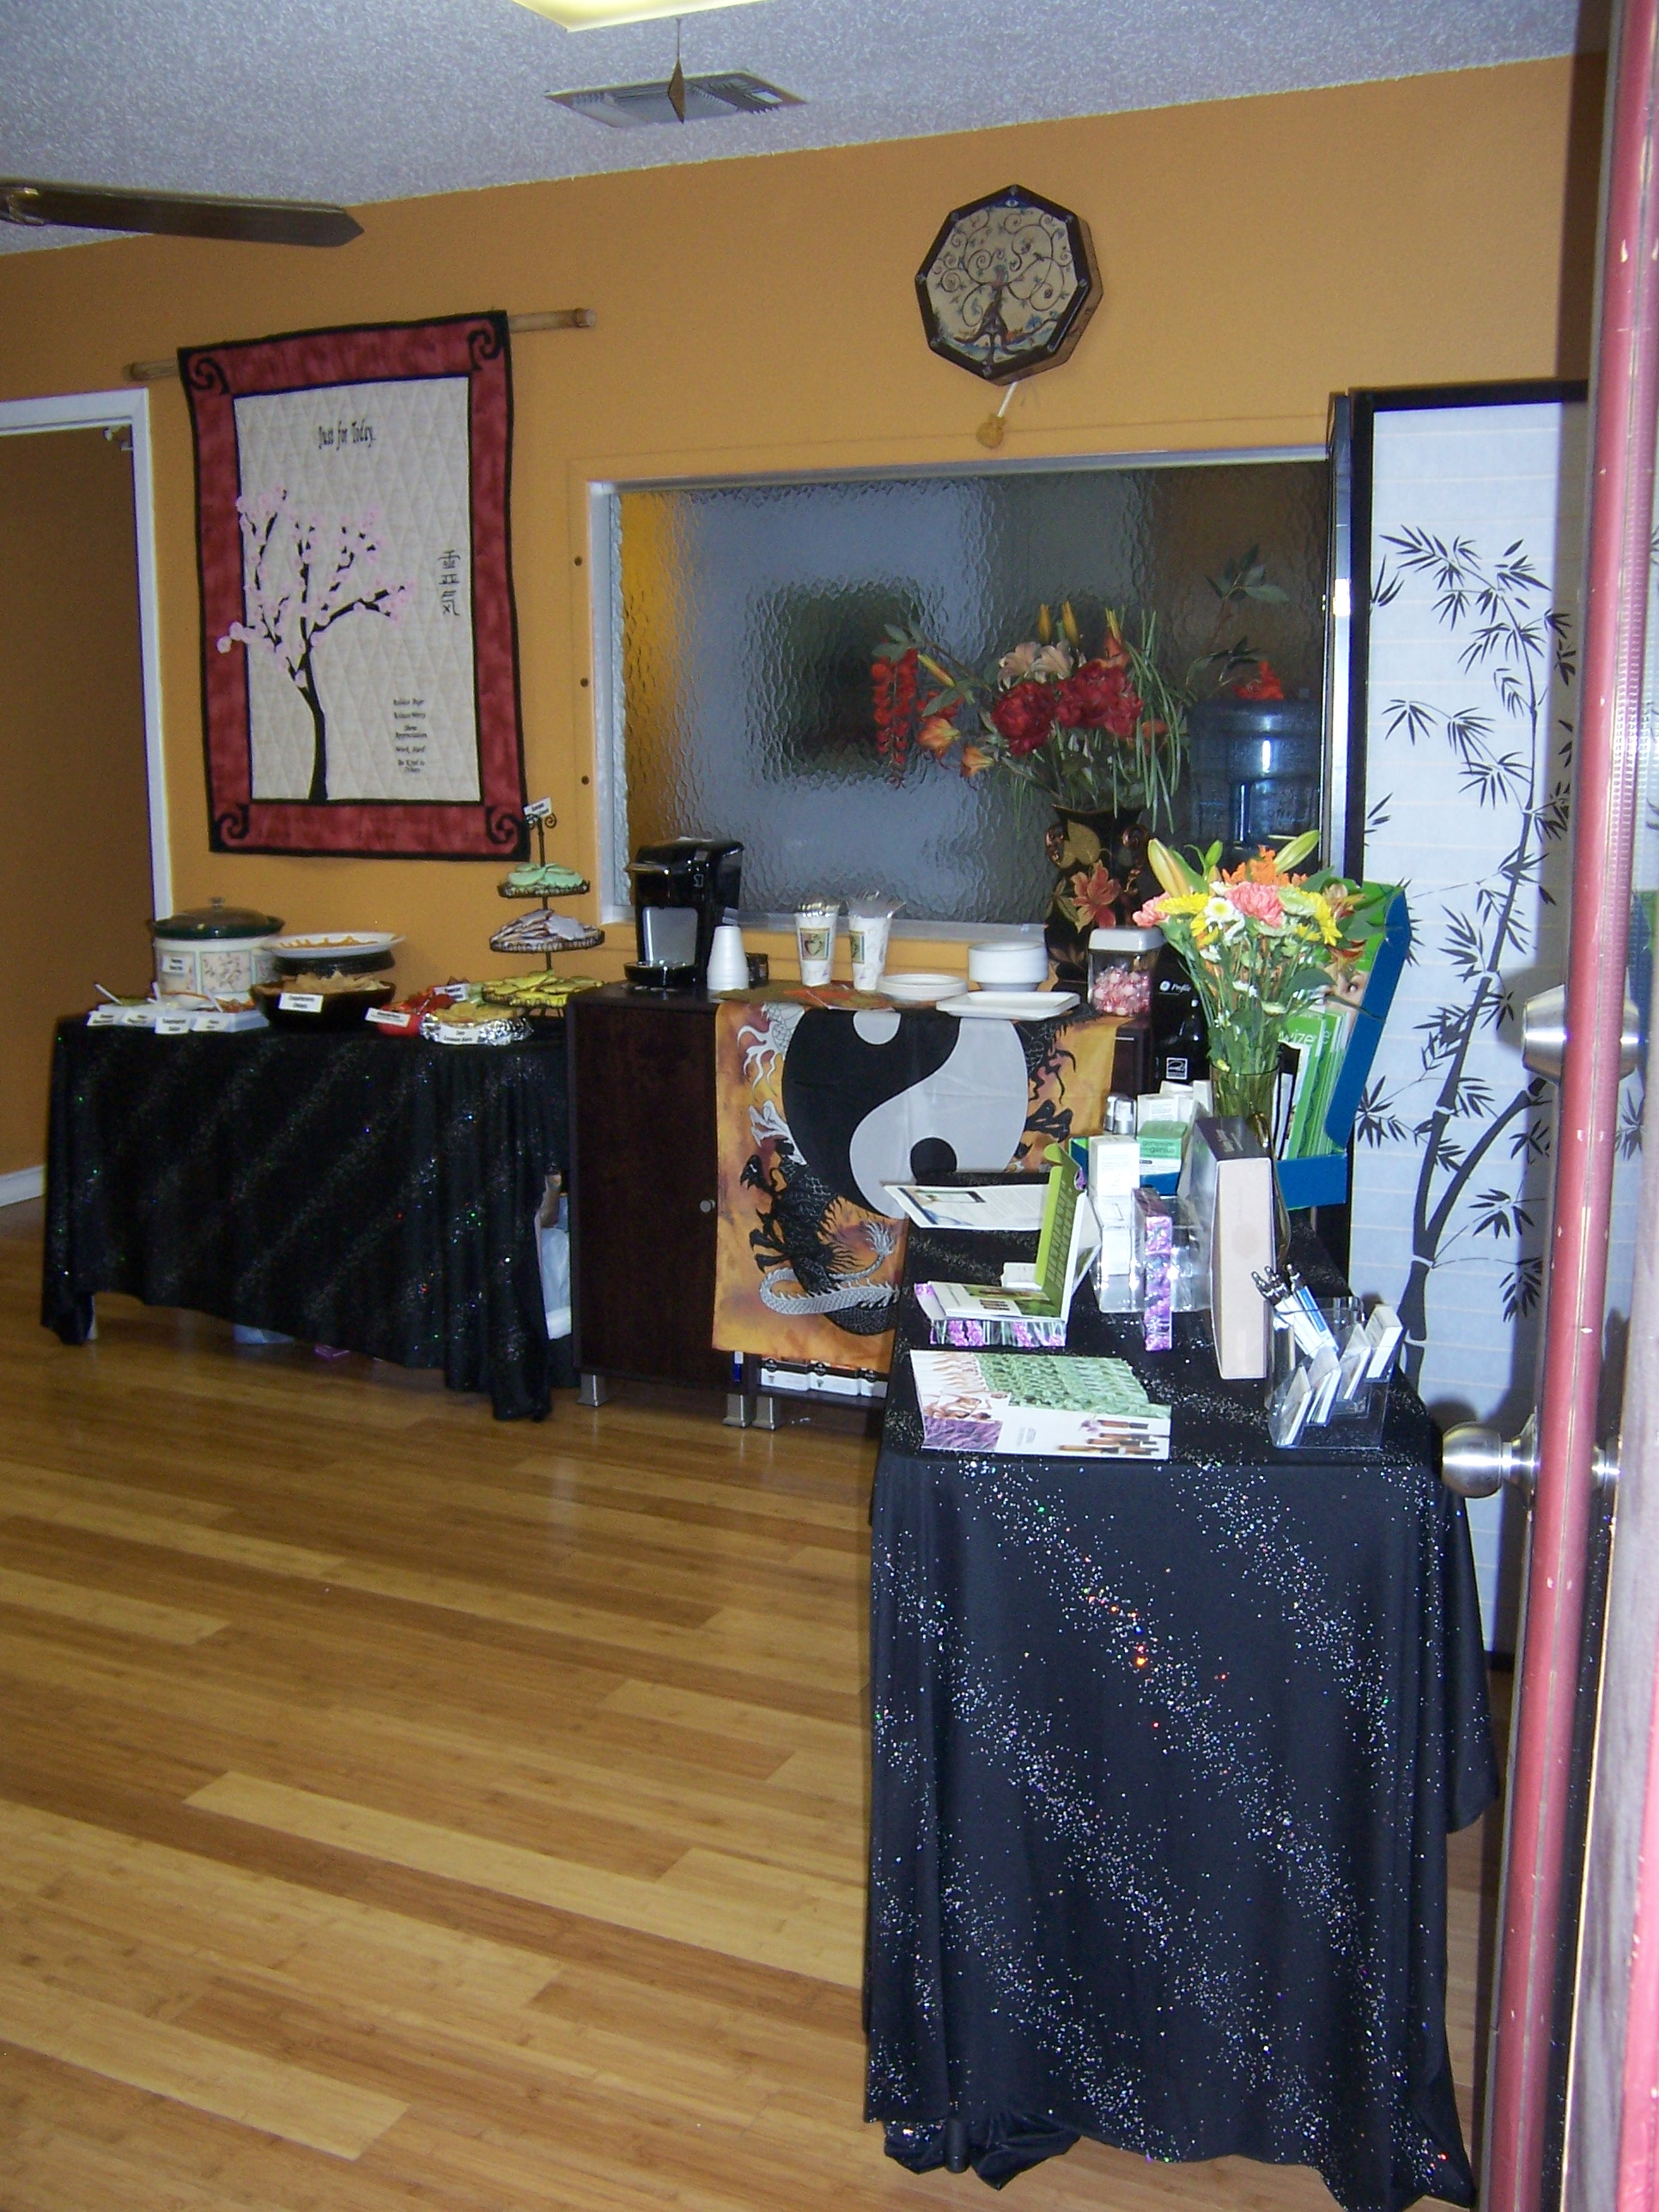 How to Plan an Astrology Themed Event for Your Open House Part 1